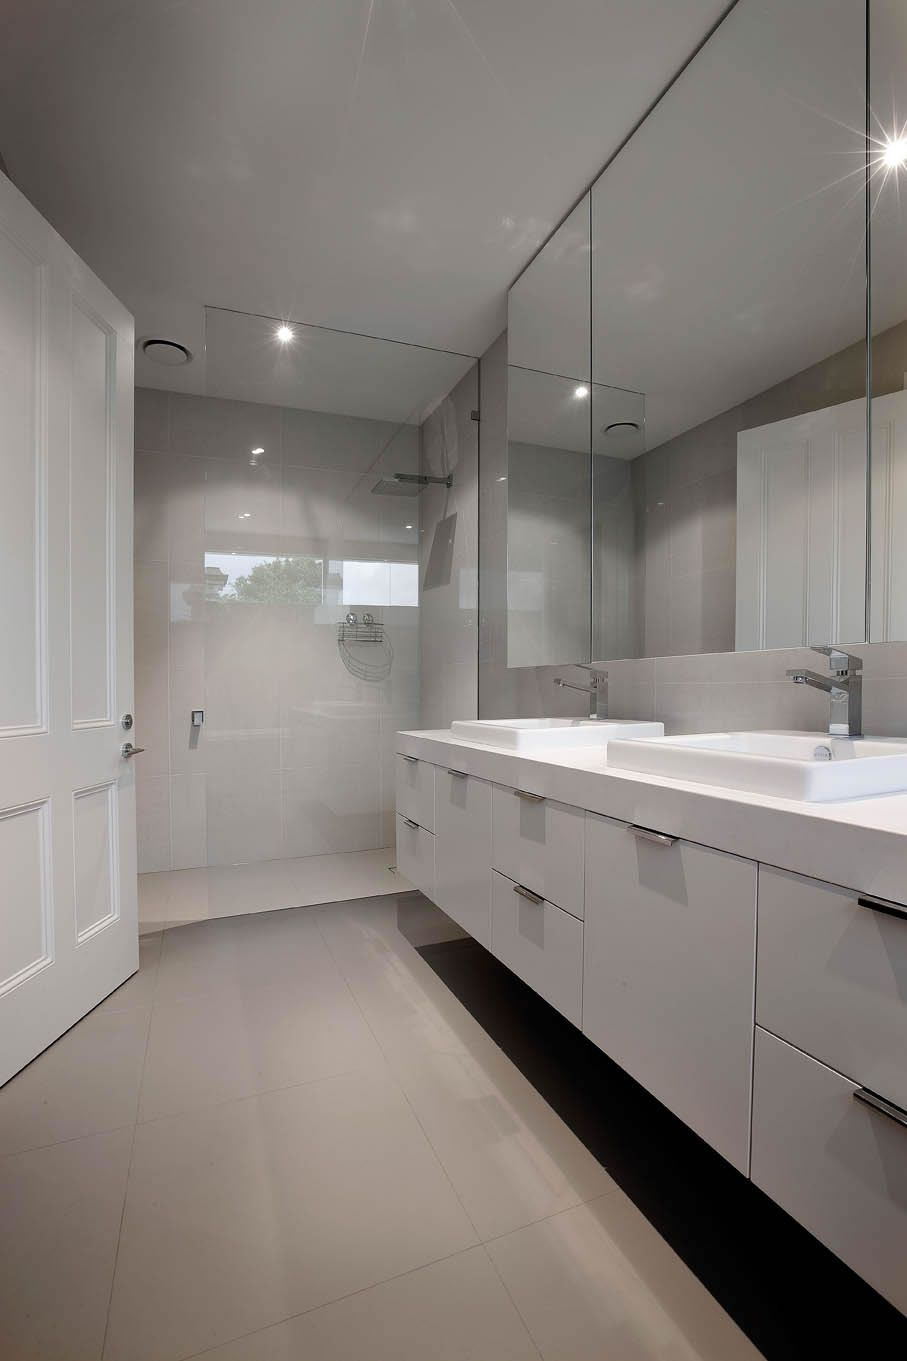 Canny Renovations In Hawthorn Melbourne Home Renovations Architectural House Small Bathroom Renovations Bathroom Renovations Melbourne Bathroom Renovations